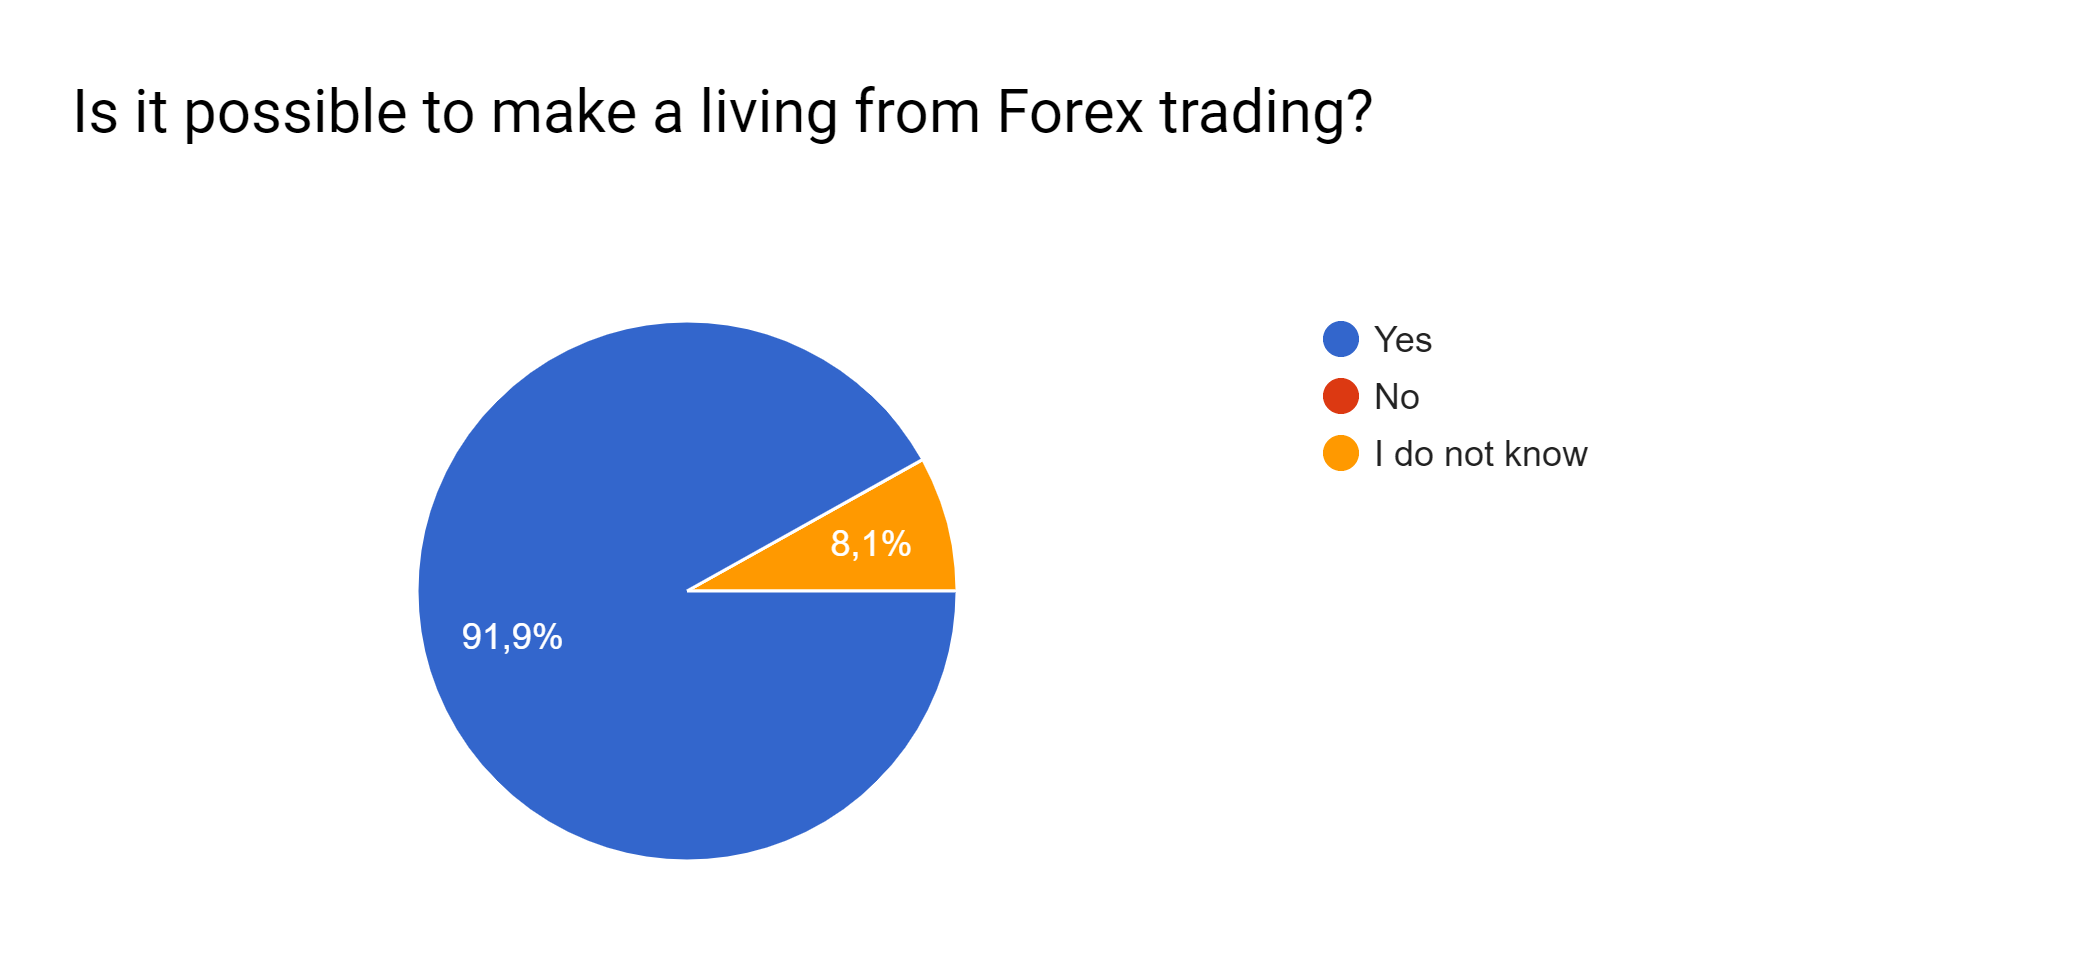 Is it possible to make a living from Forex trading?